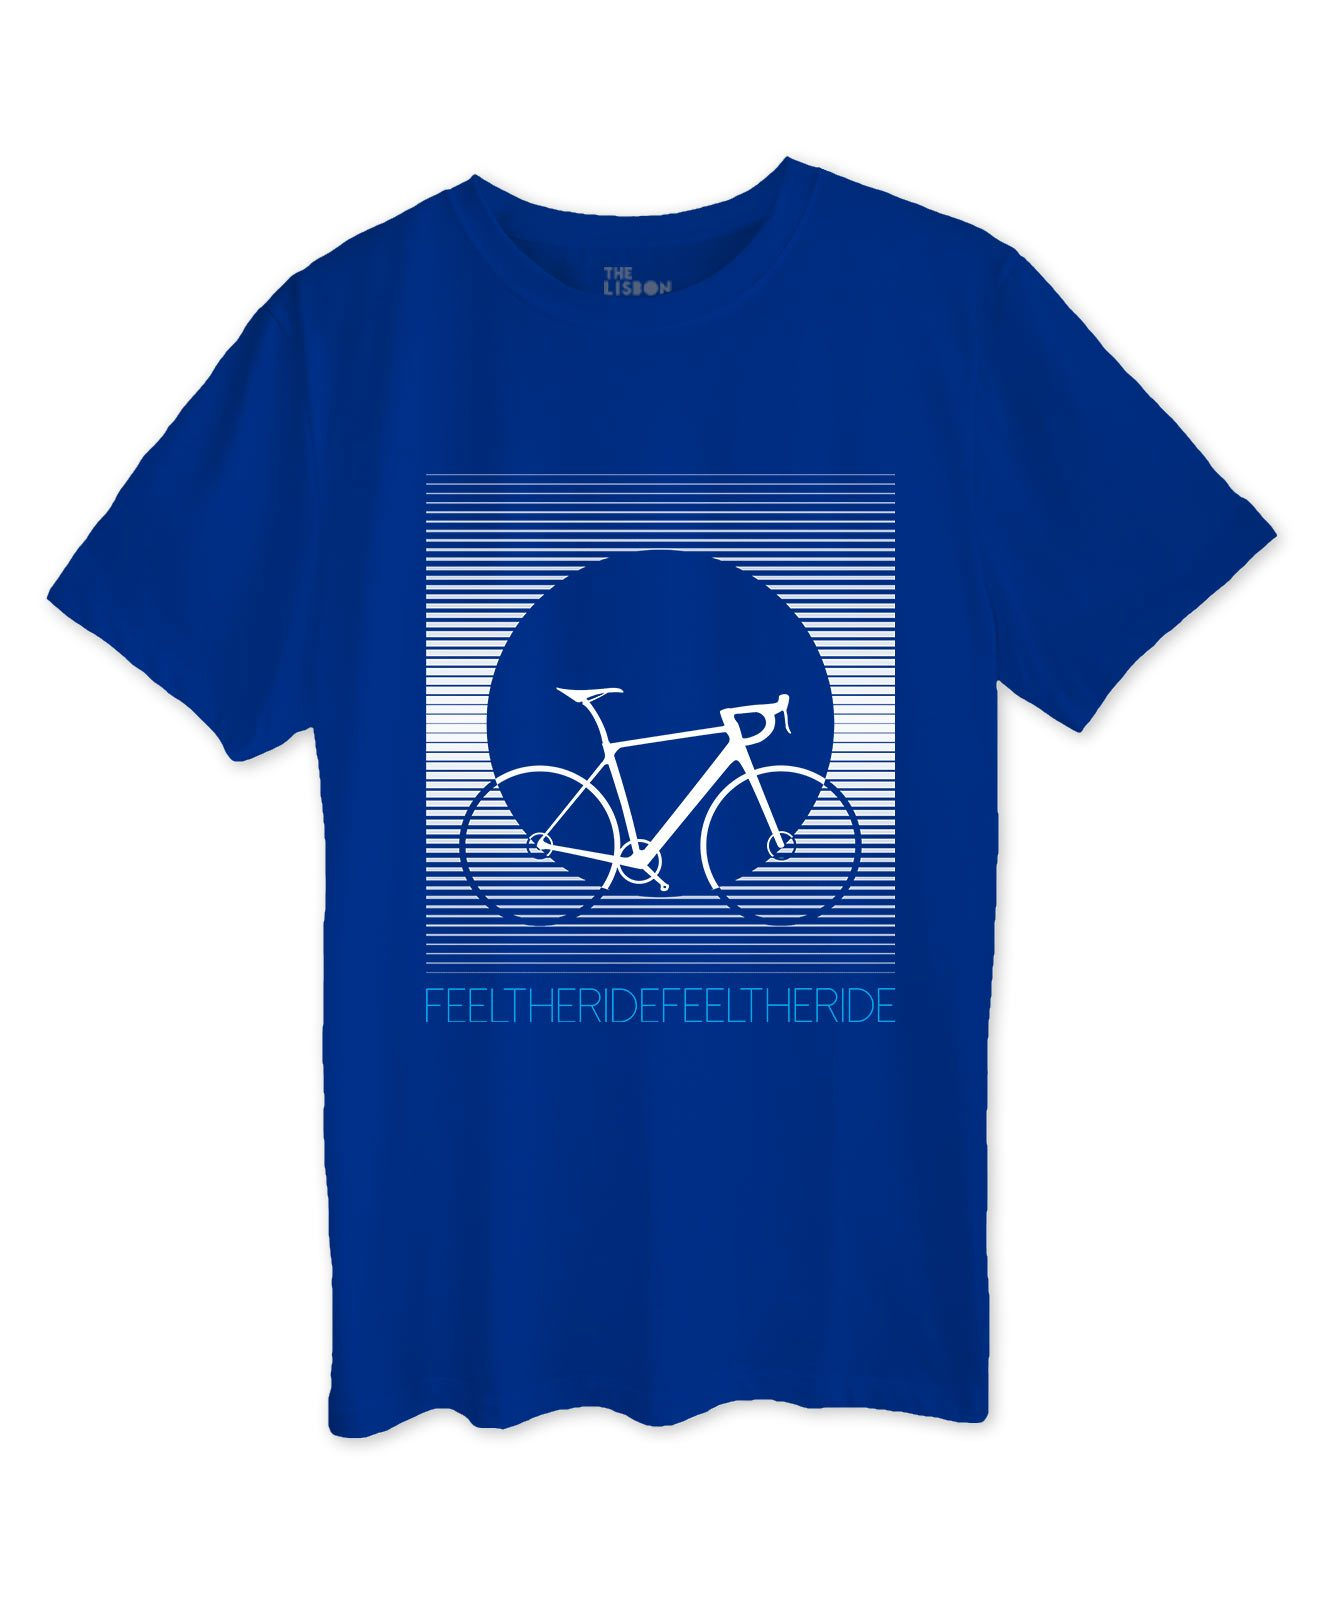 Bike Stripes Road T-shirt roayla blue